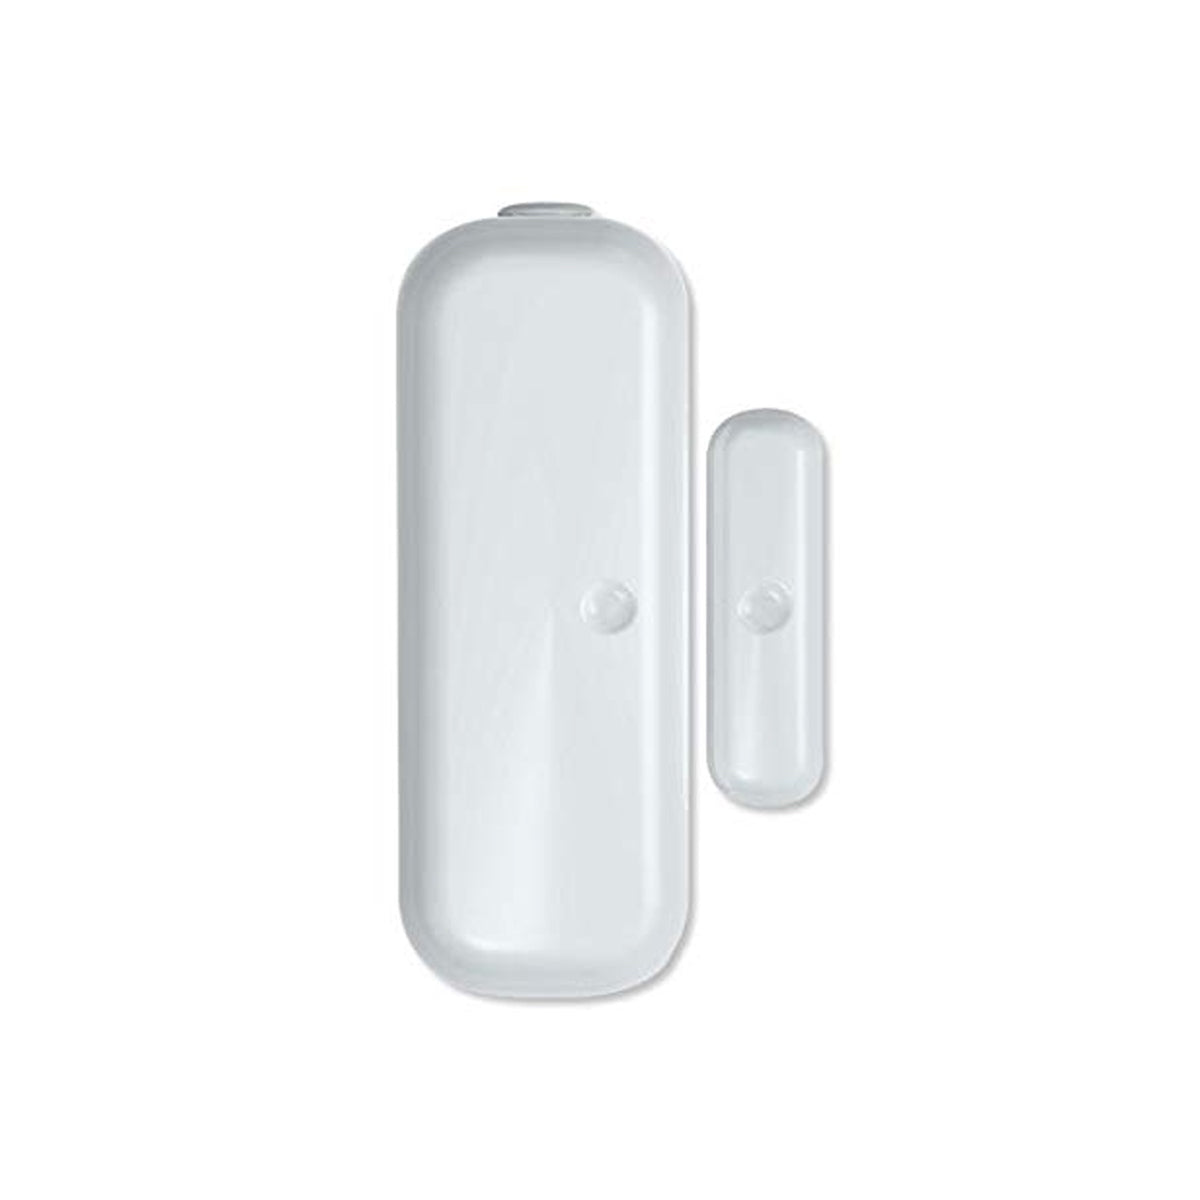 Aeotec Door/ Window Sensor Gen 5